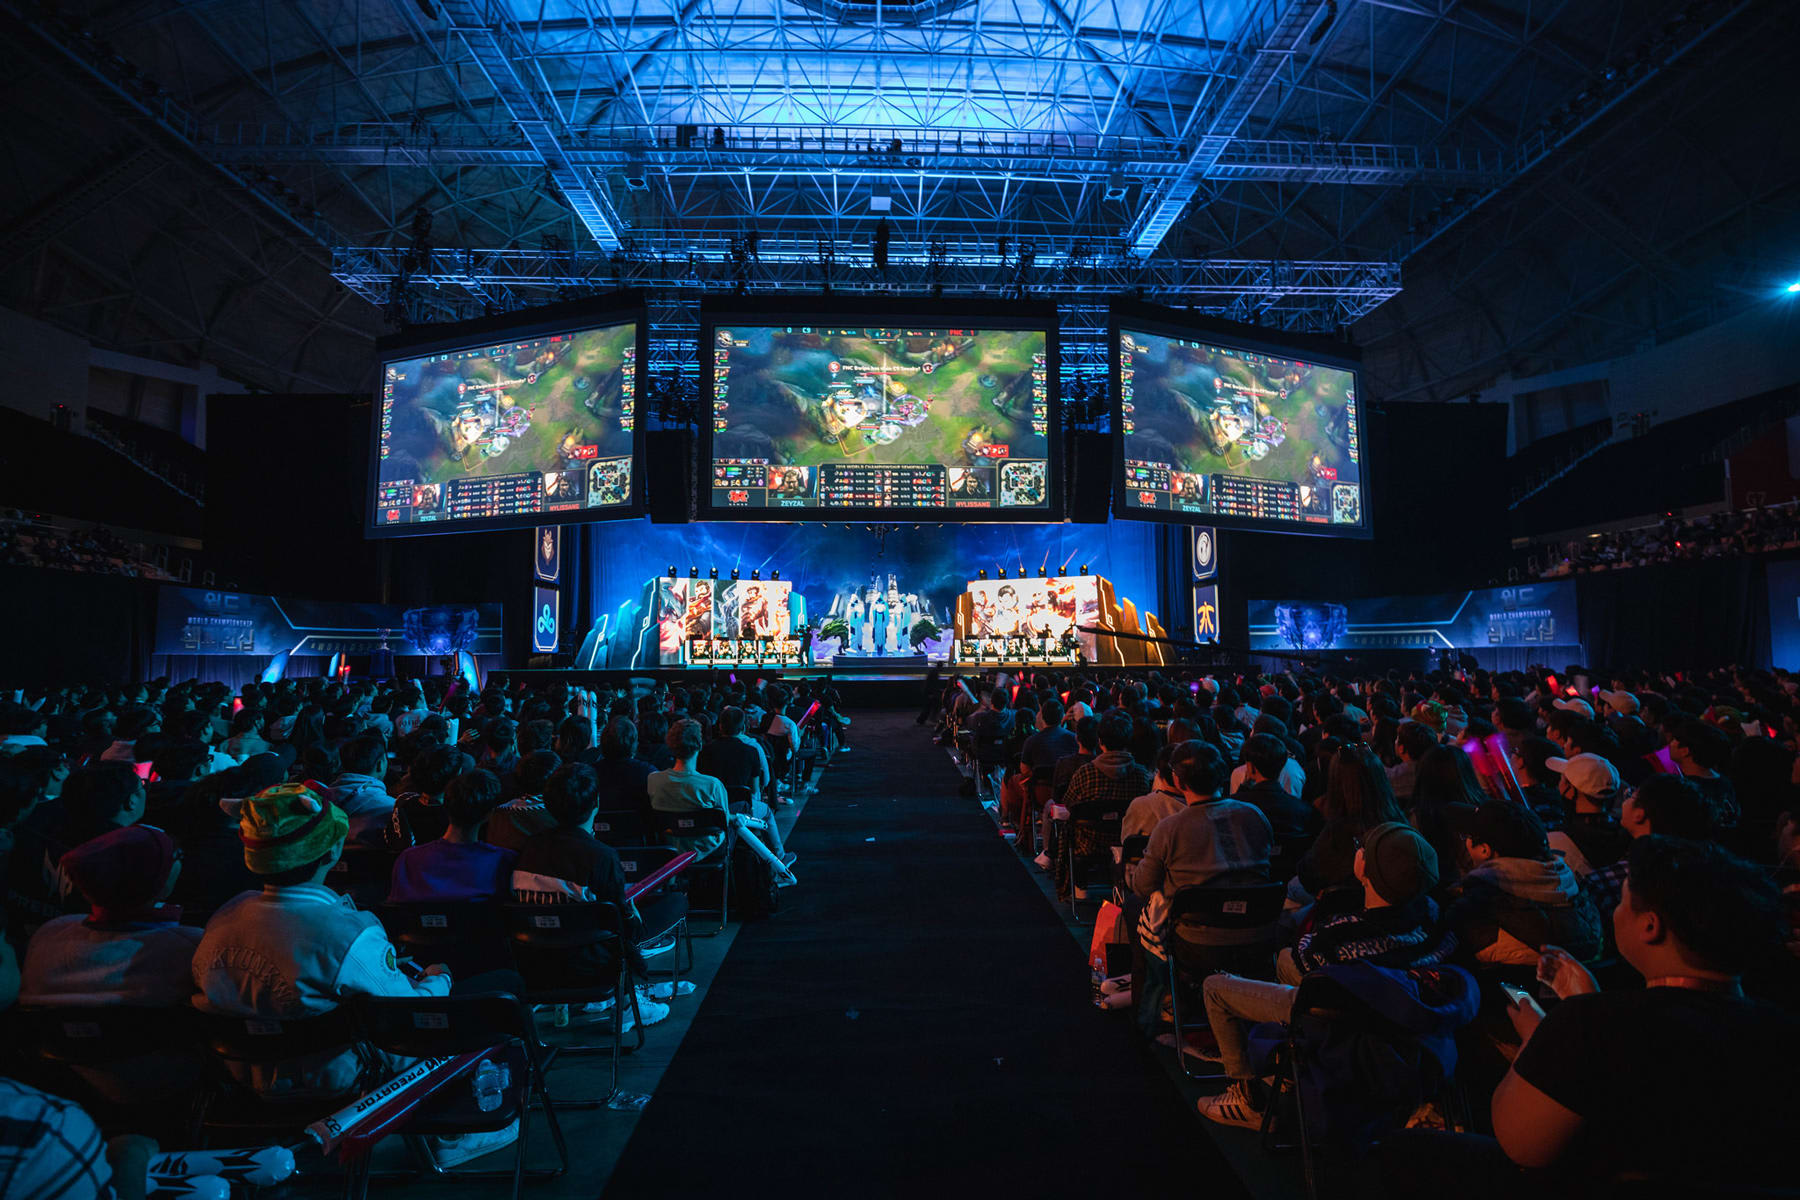 Na Lcs Schedule 2020 League of Legends World Championship returns to NA in 2021